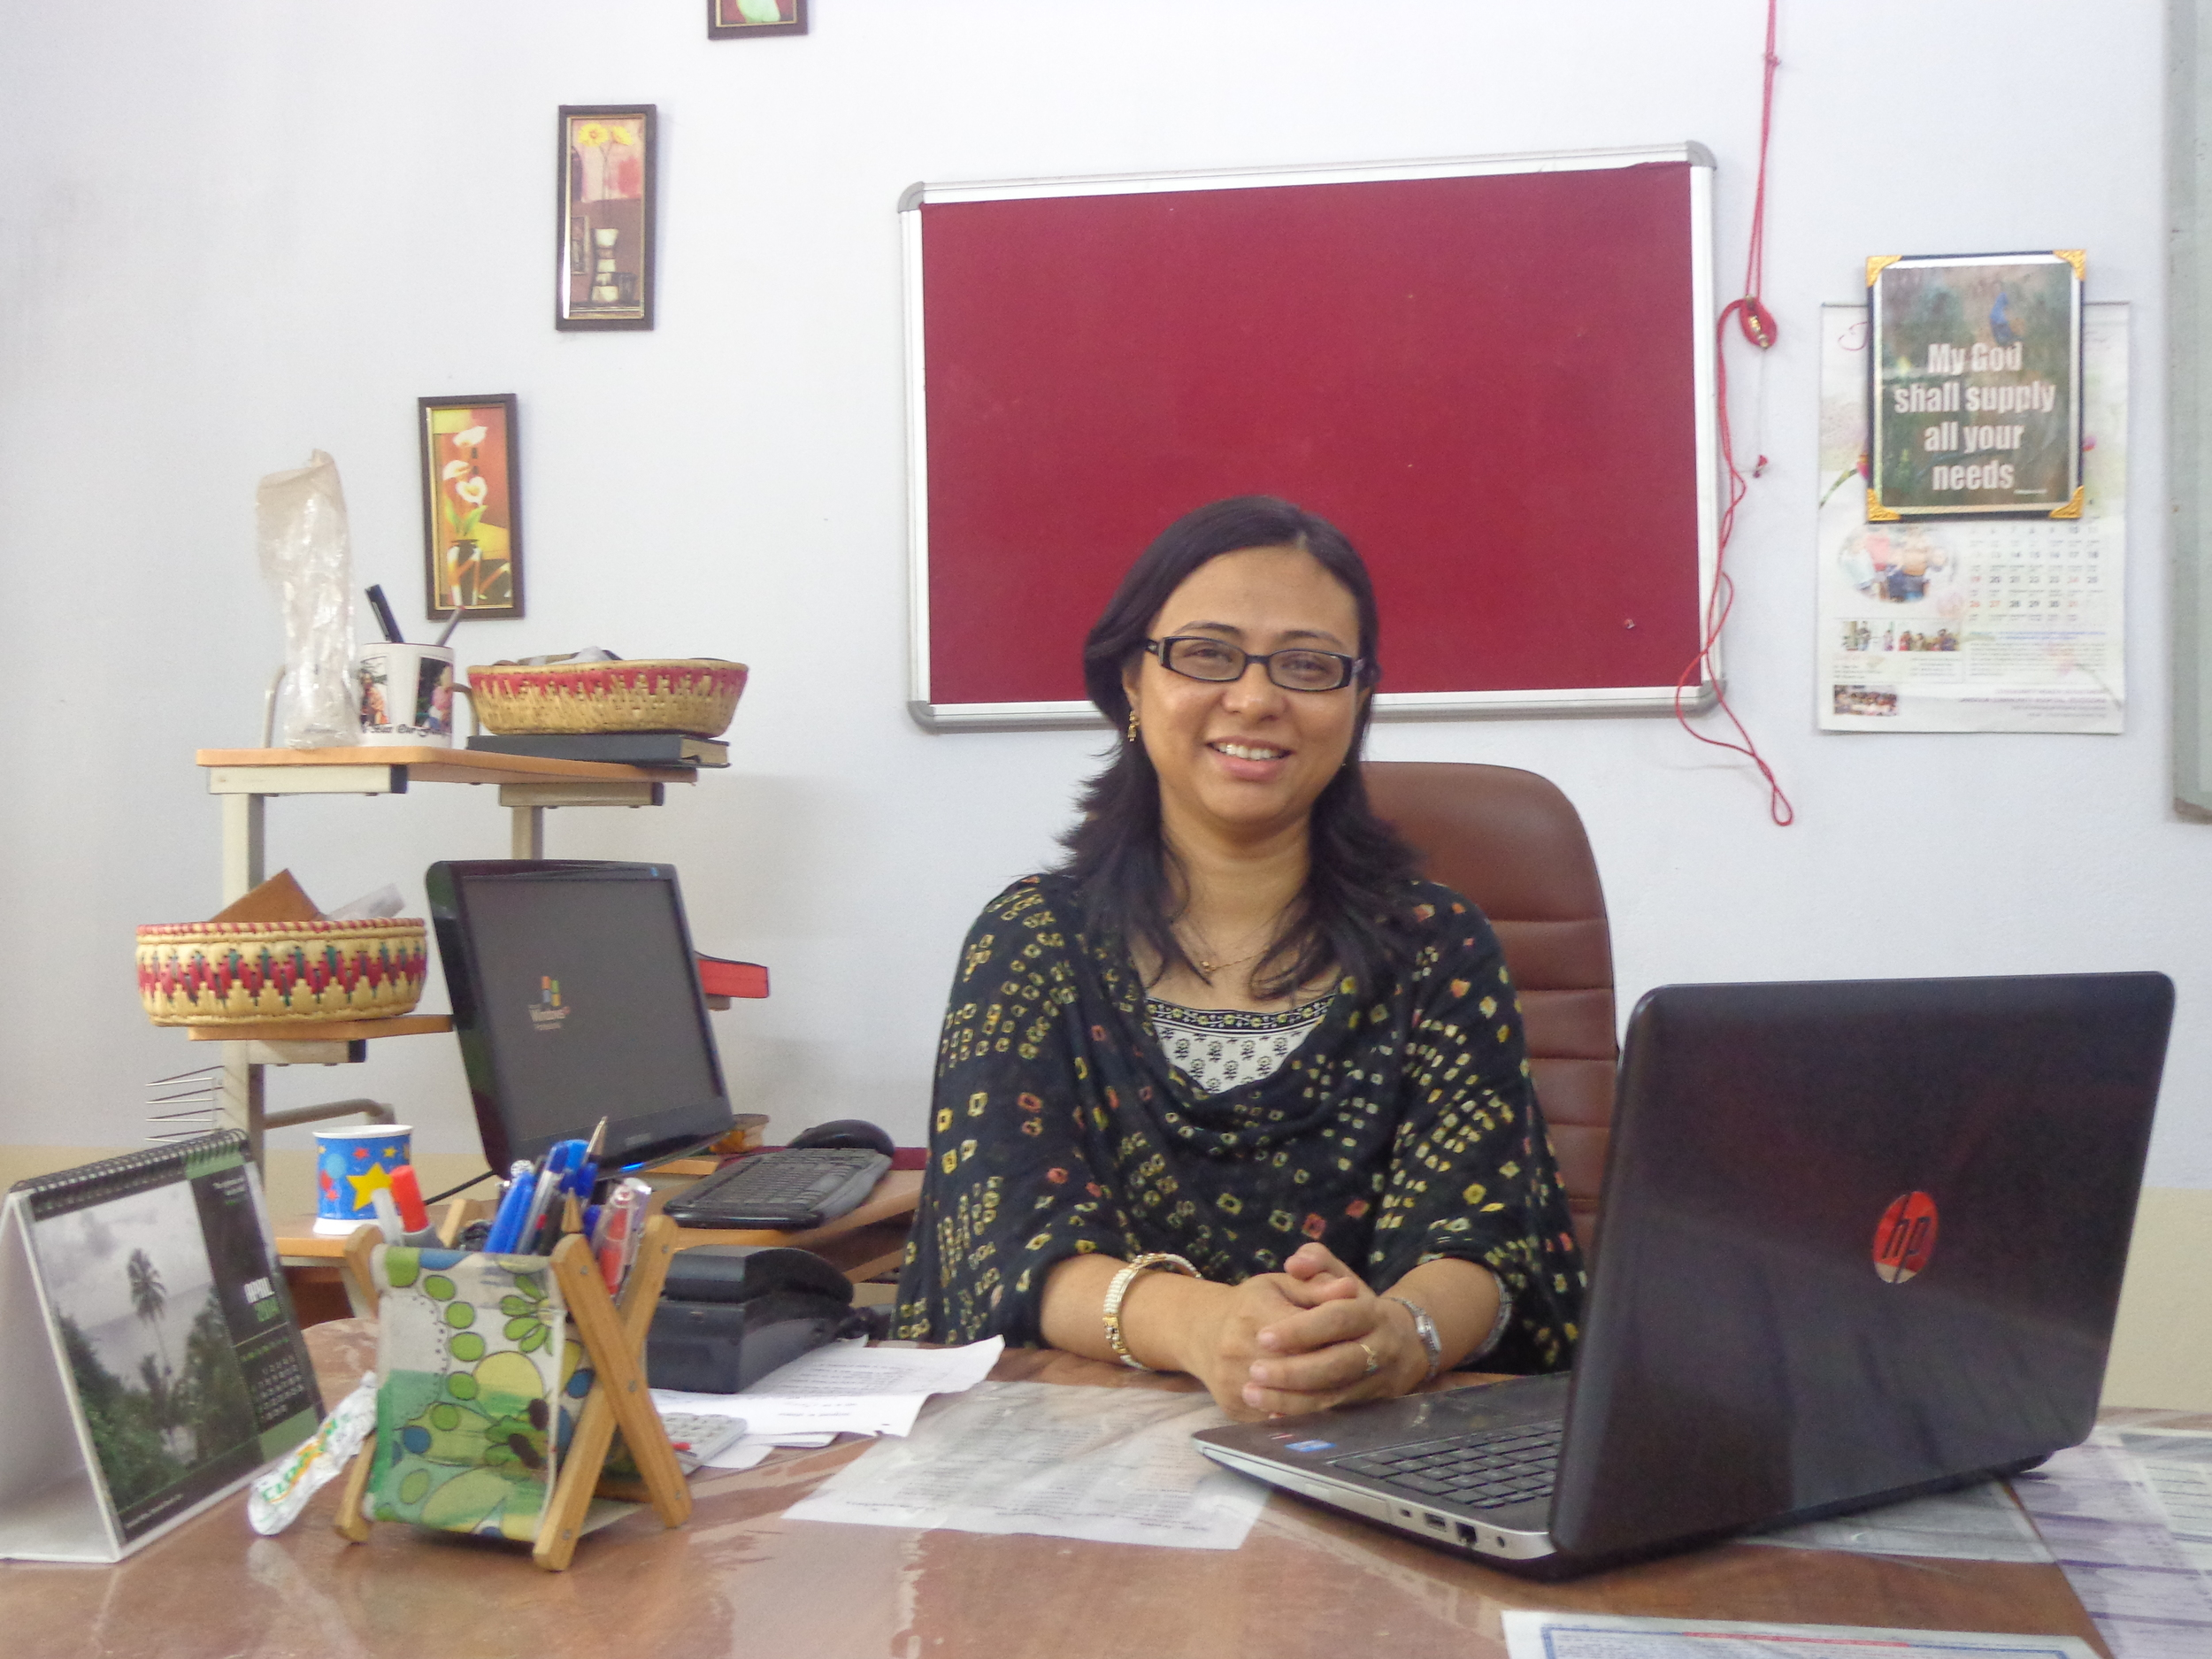 Vandana's office is rarely quiet, as staff members, project managers, and community members bustle in out and with questions, problems, and a desire to connect with her - Photo courtesy of Dr. Vandana.